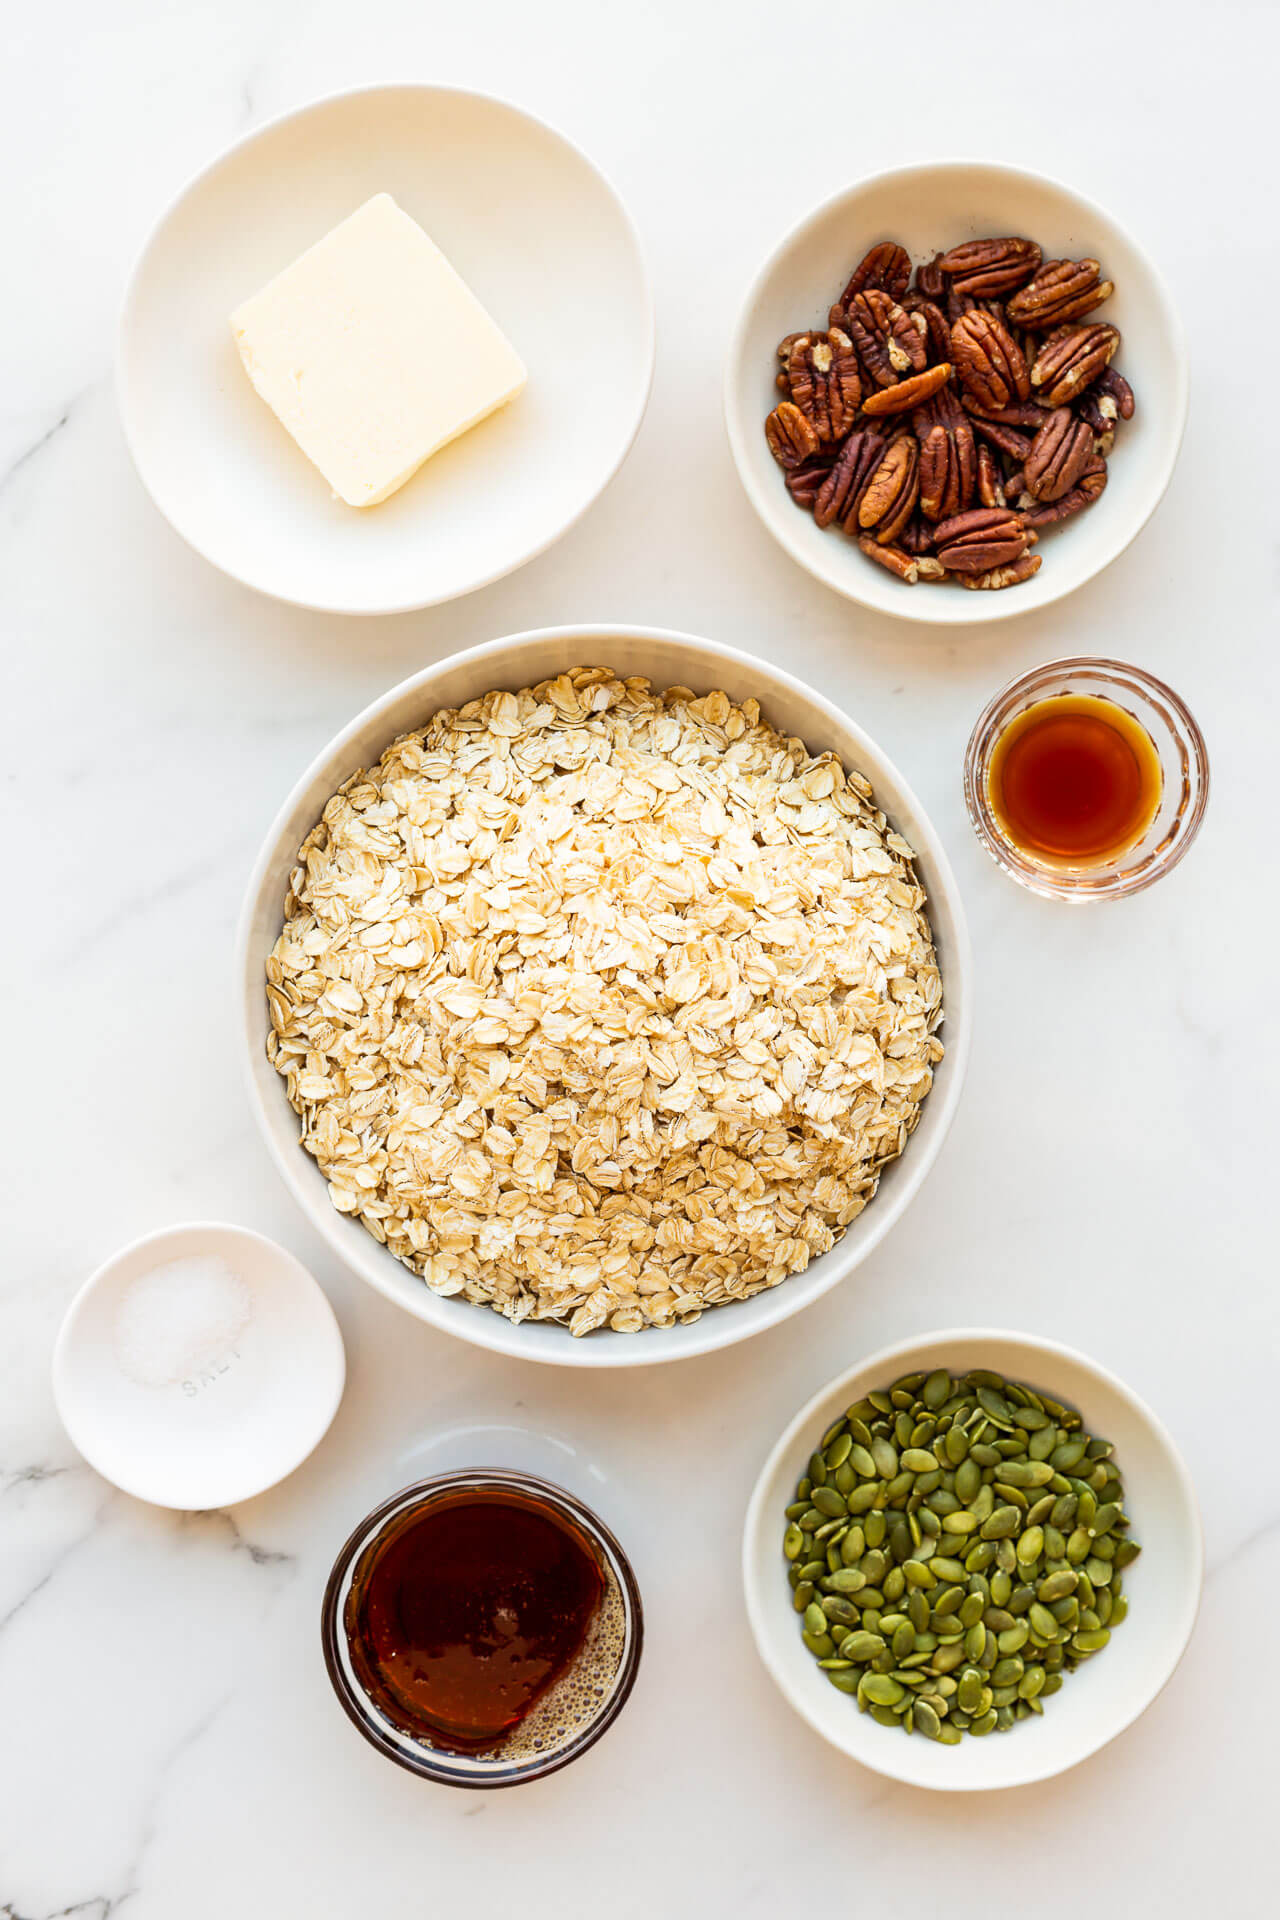 Ingredients to make granola clusters measured out in bowls and ready to be mixed: butter, pecans, vanilla extract, oats, salt, maple syrup, and pumpkin seeds